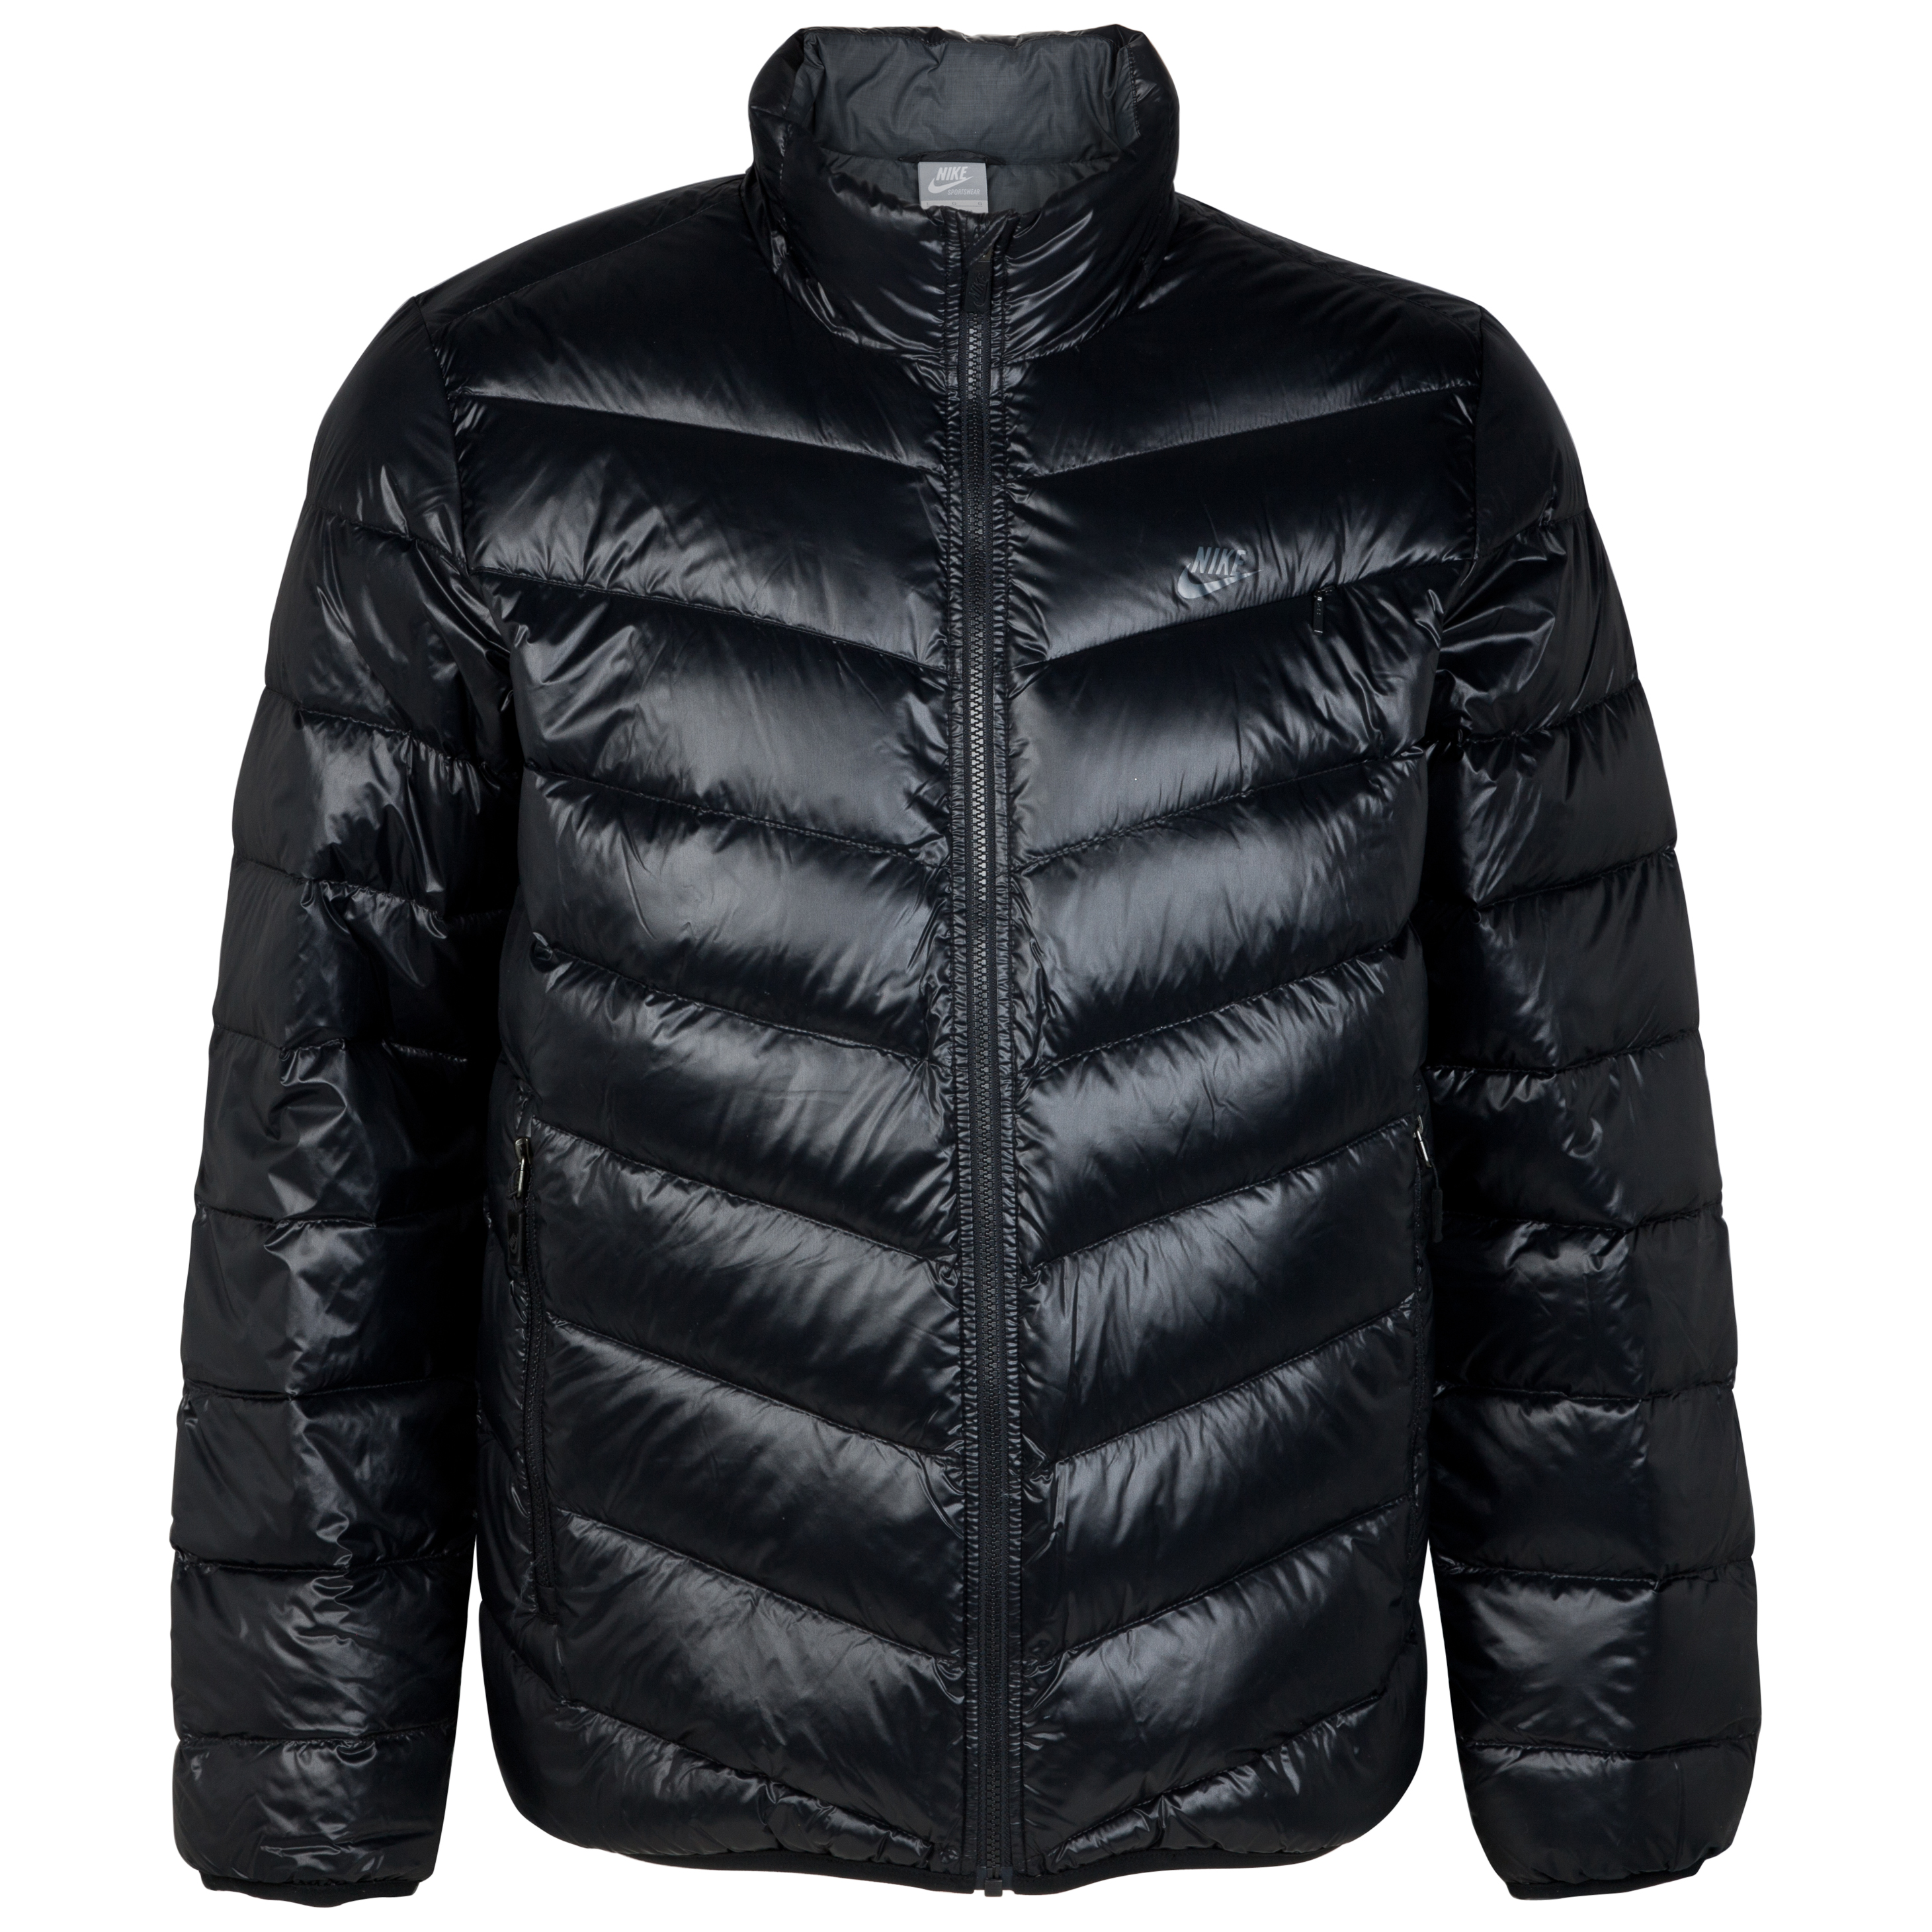 Nike Cascade 700 Down Jacket - Black/Anthracite